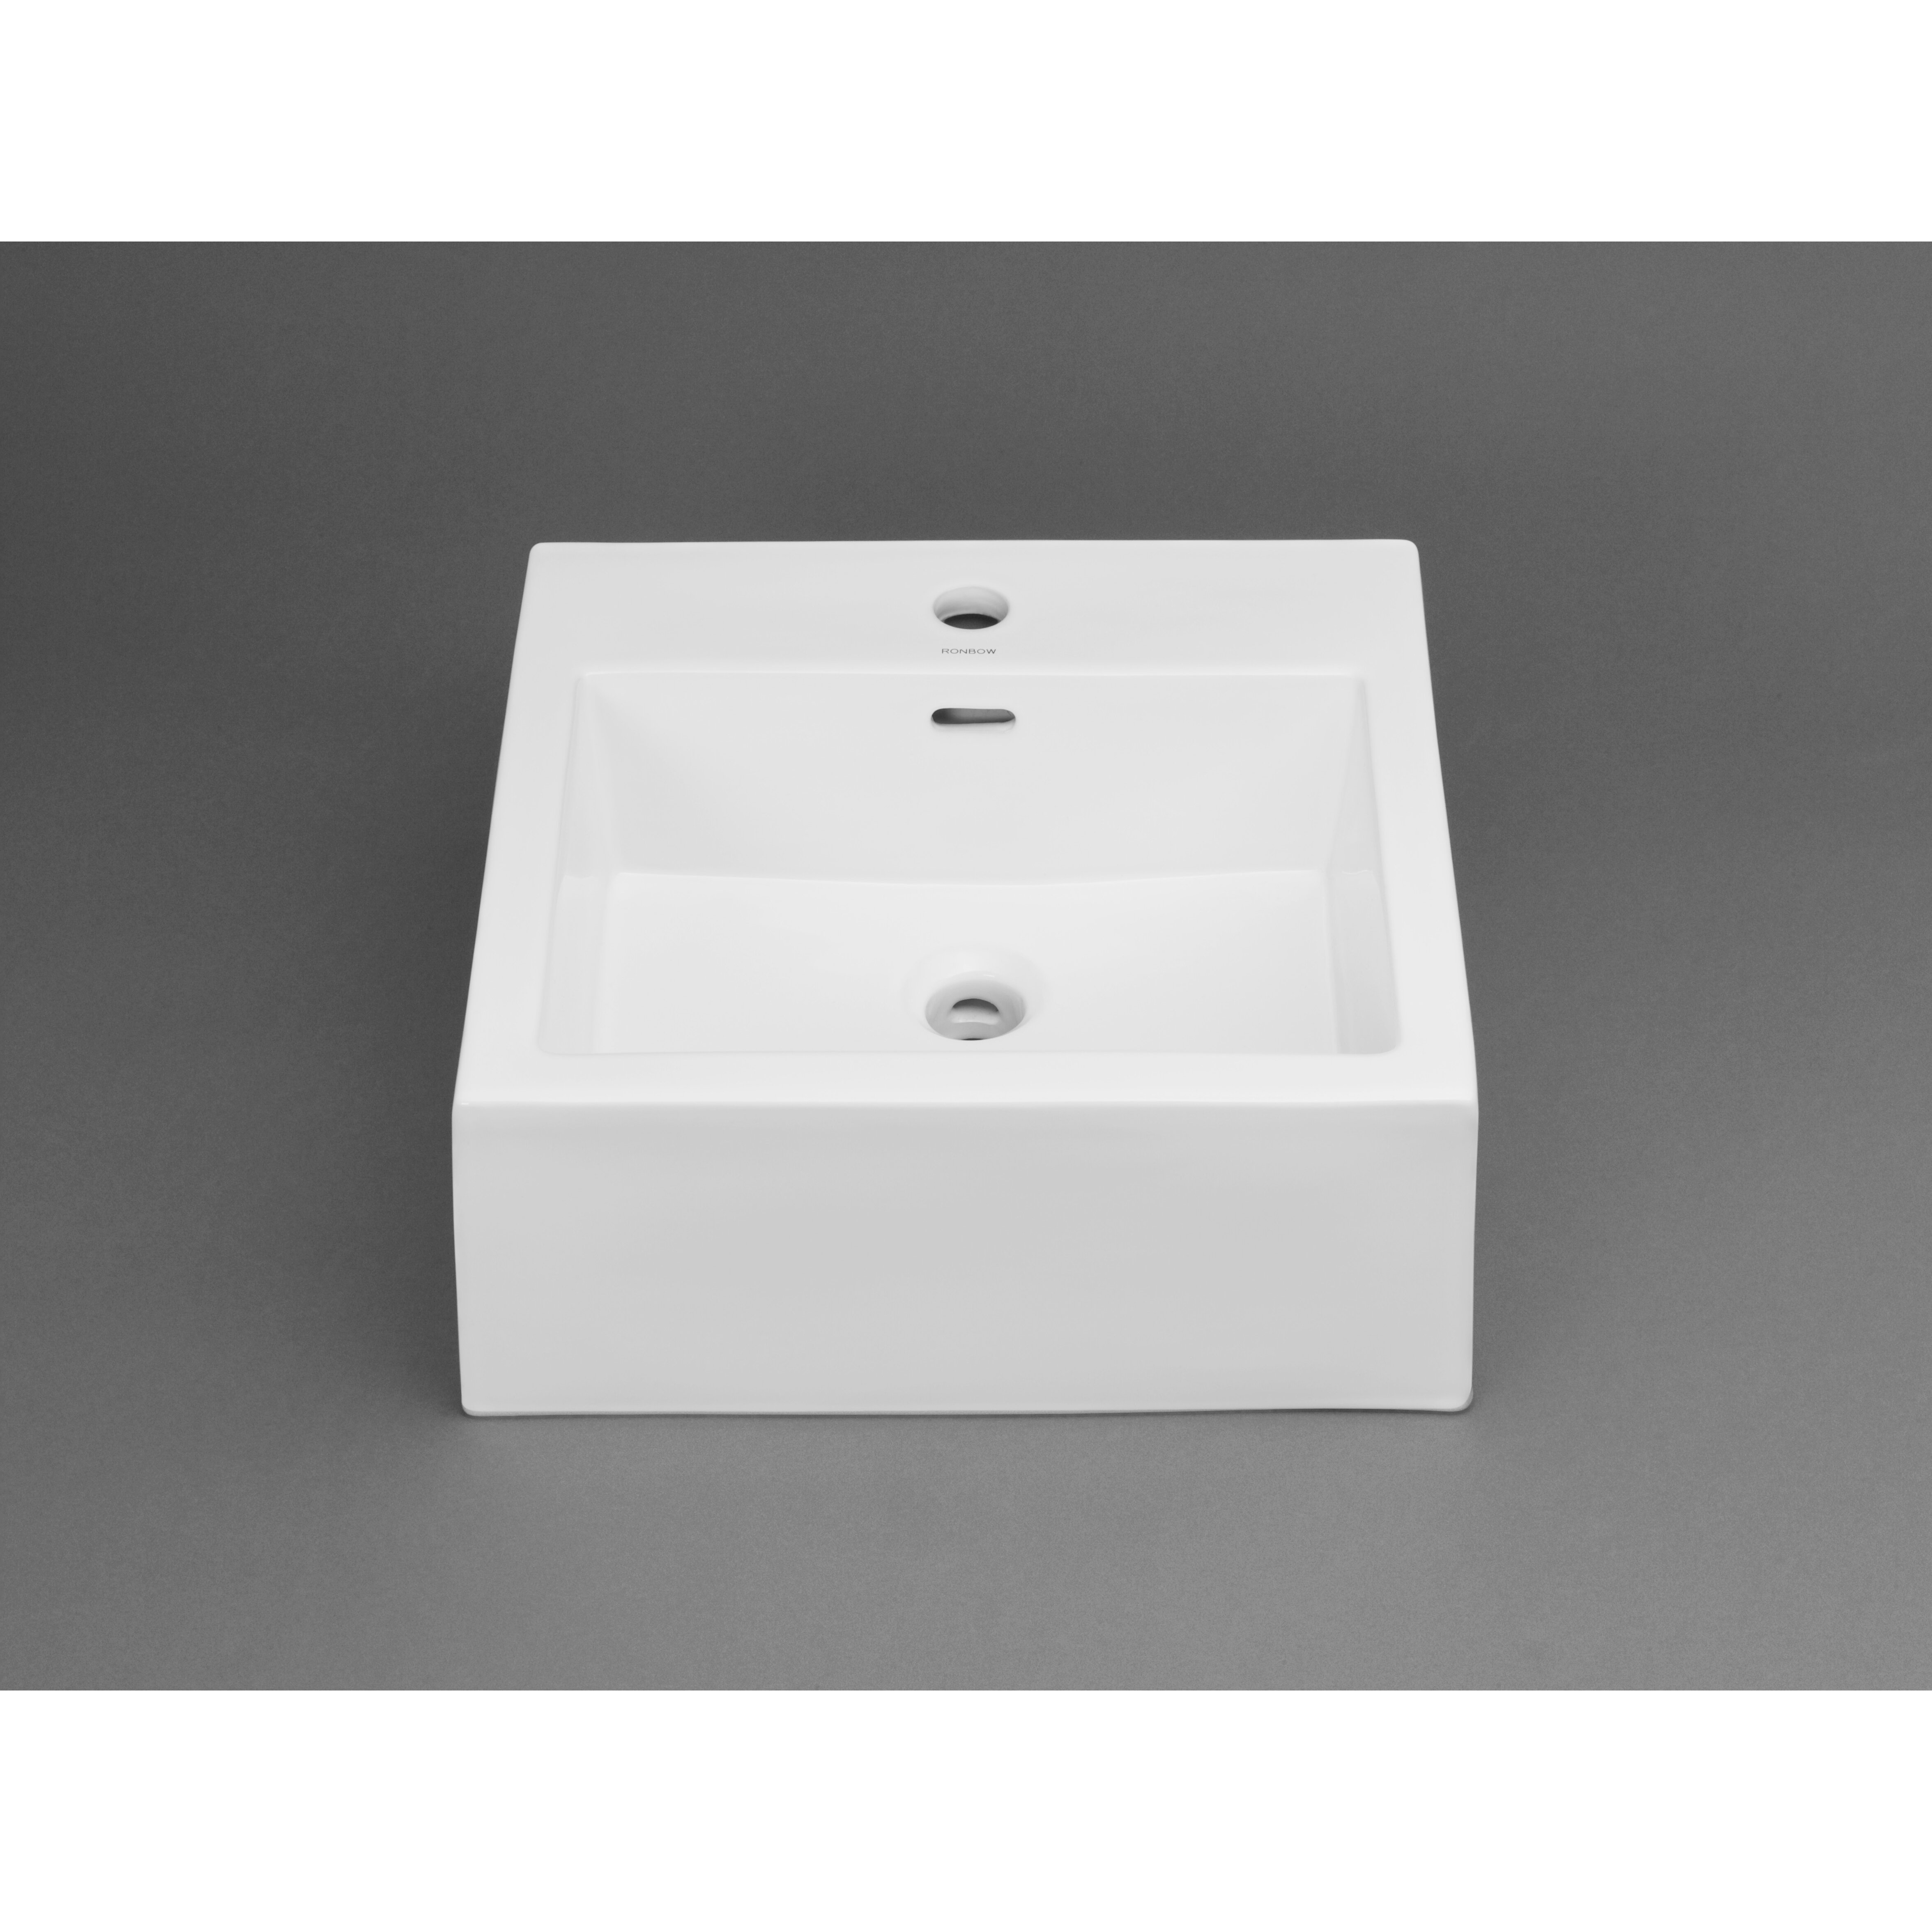 Bathroom square vessel sinks - Ronbow Ceramic Square Vessel Bathroom Sink With Overflow